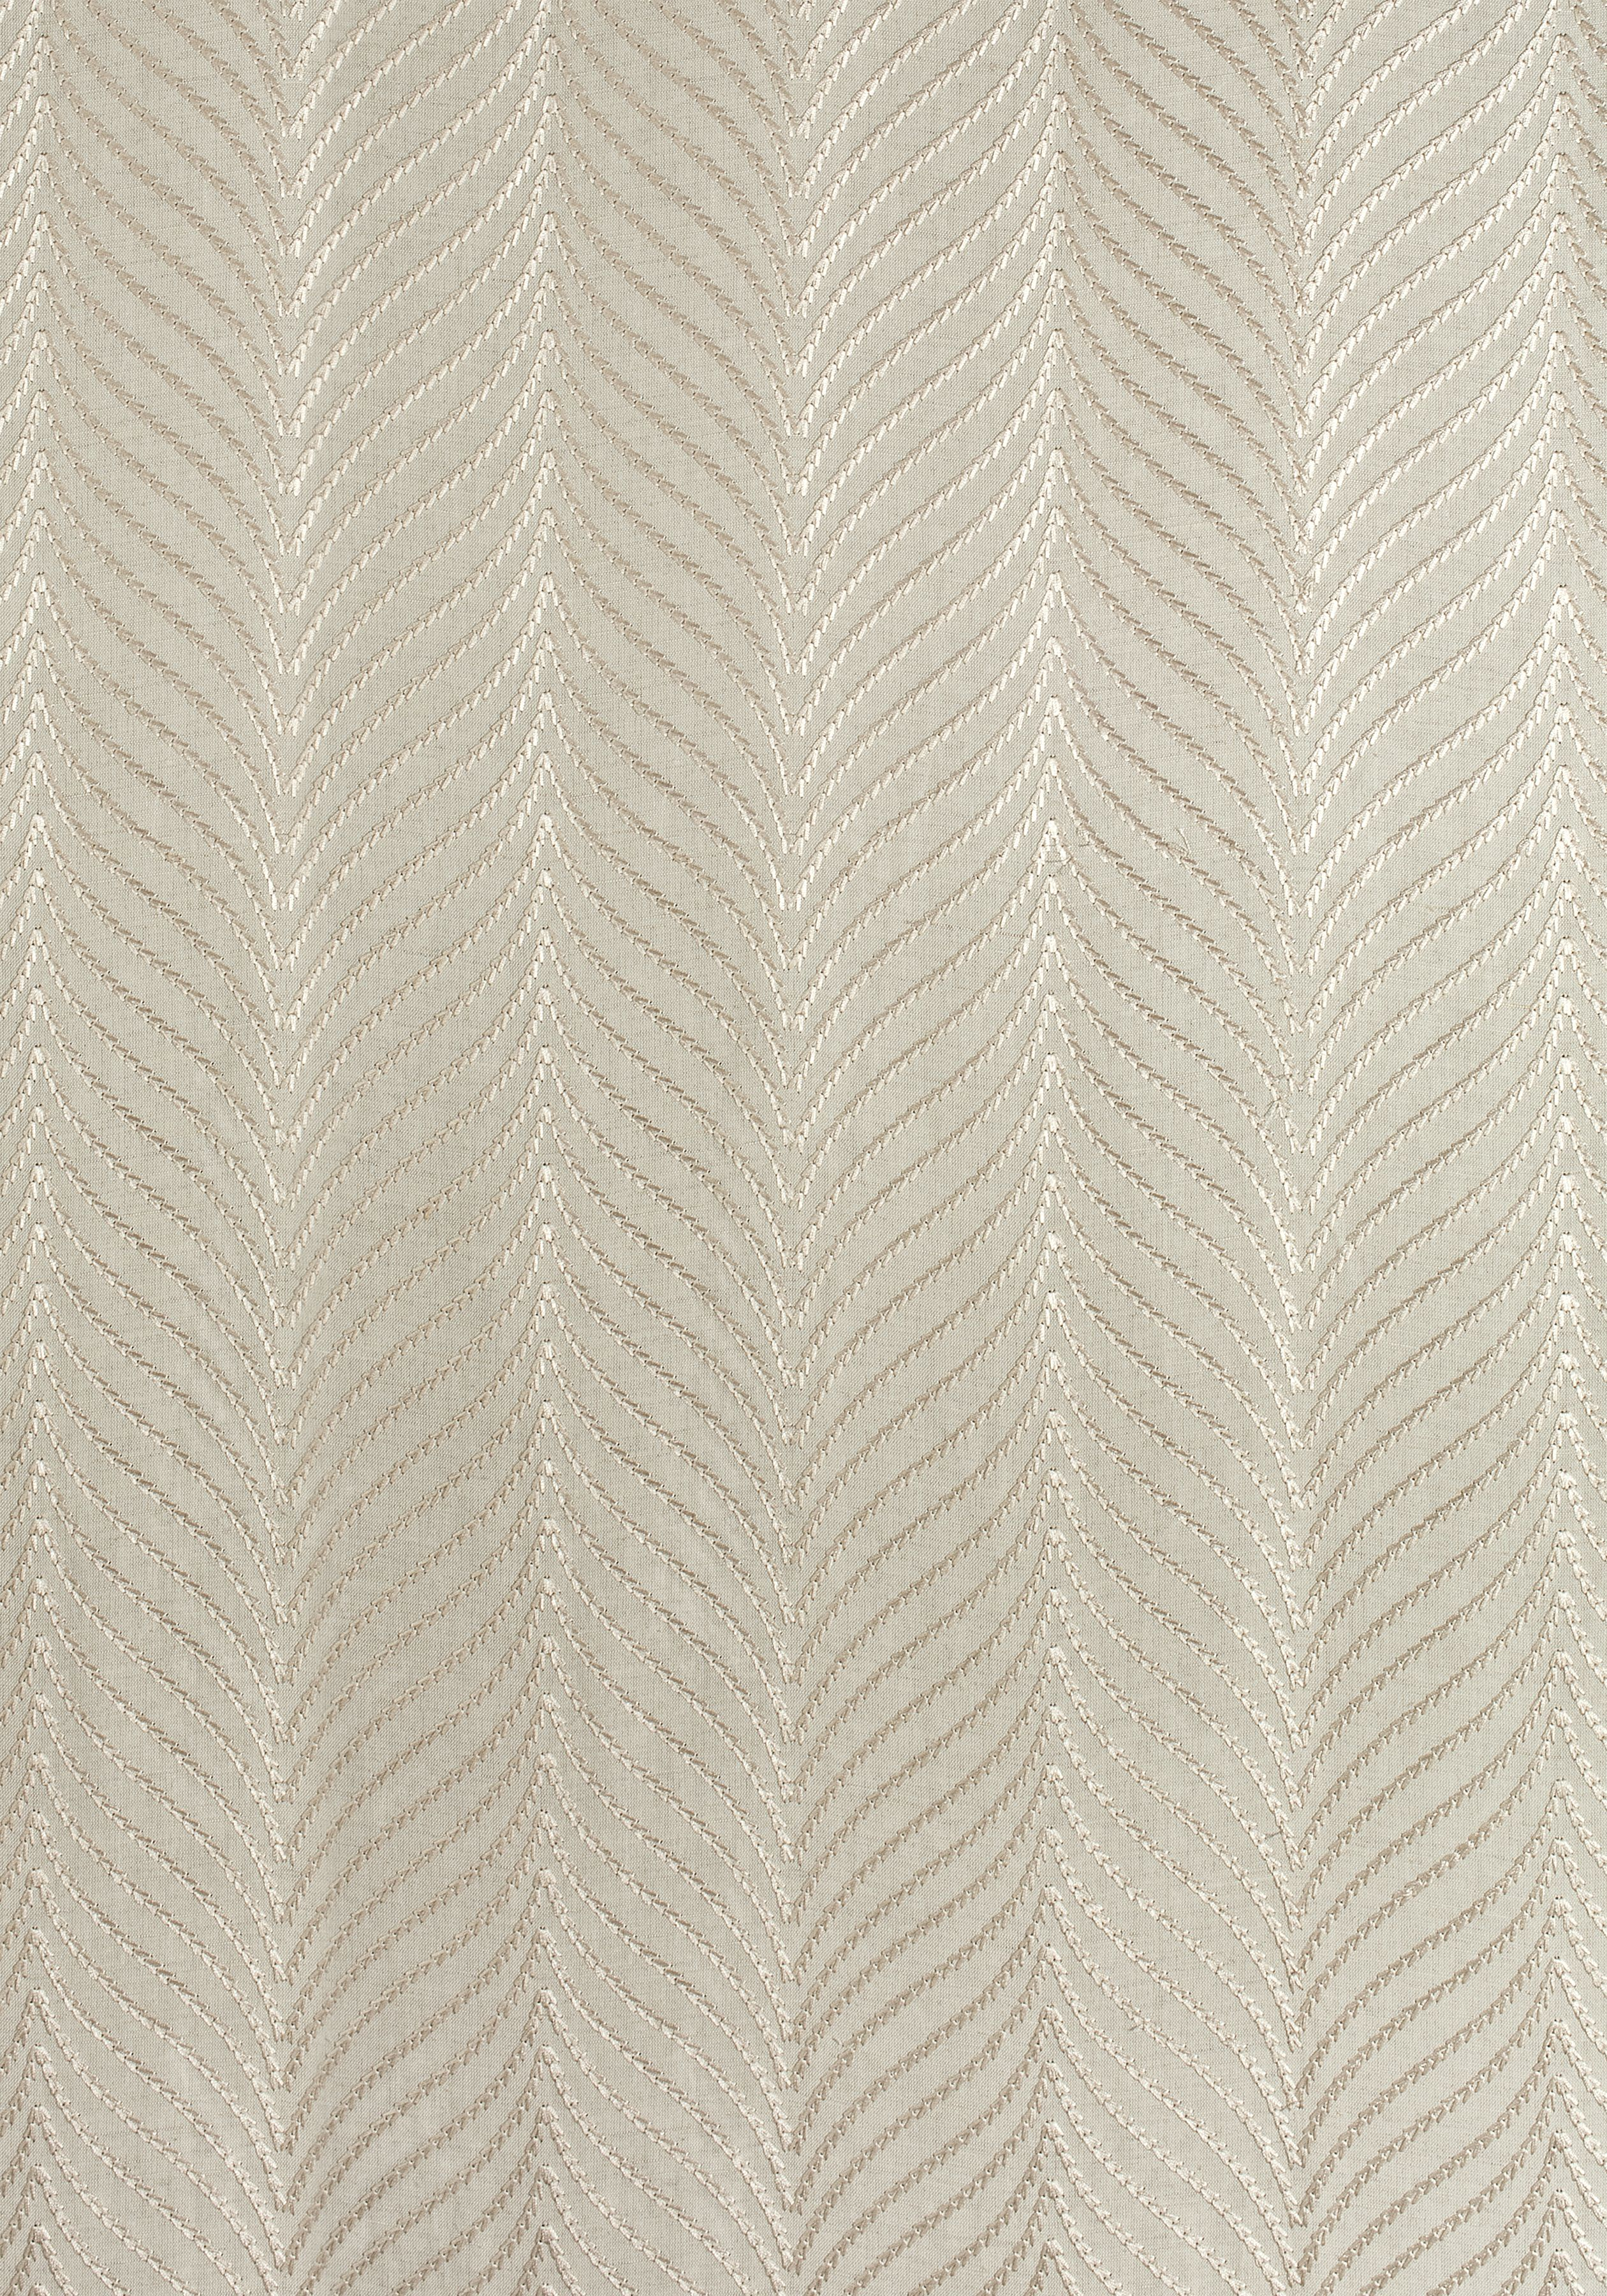 Clayton Herringbone Embro Natural W775443 Collection Dynasty From Thibaut Textured Wallpaper Fabric Textures Fabric Wallpaper